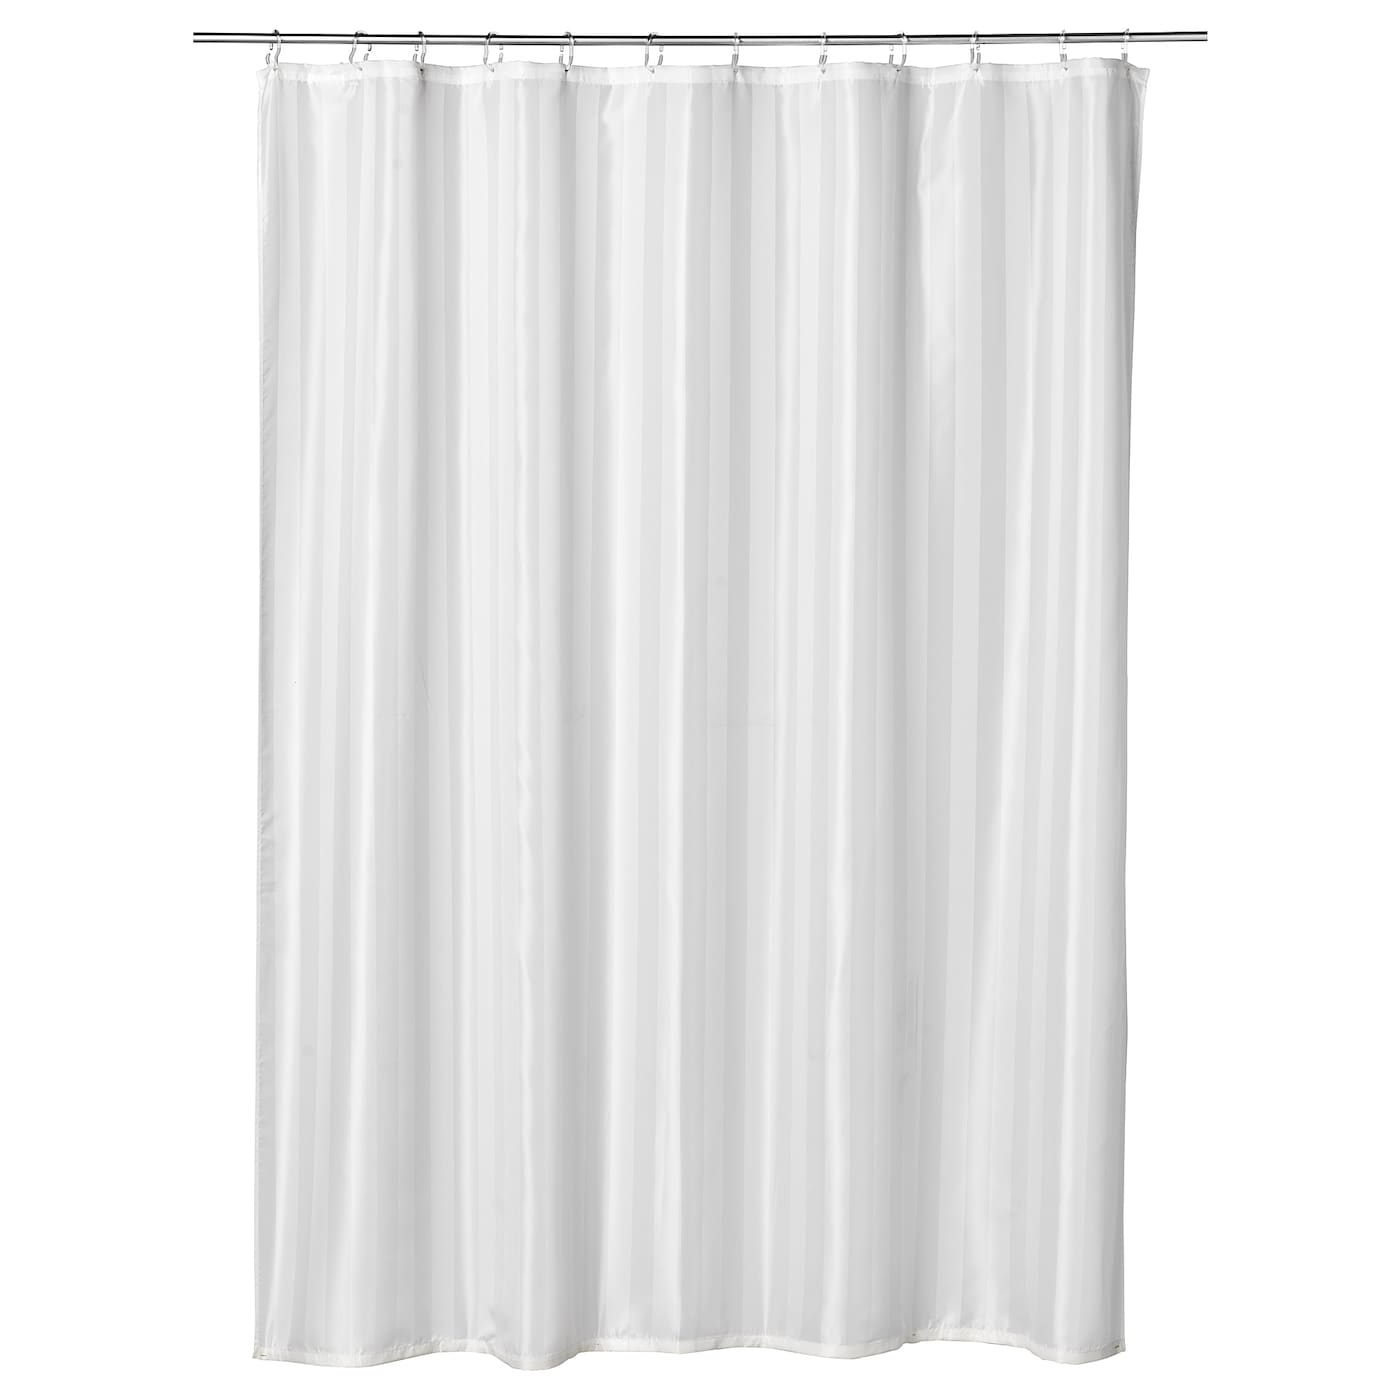 IKEA SALTGRUND shower curtain Densely-woven polyester fabric with water-repellent coating.